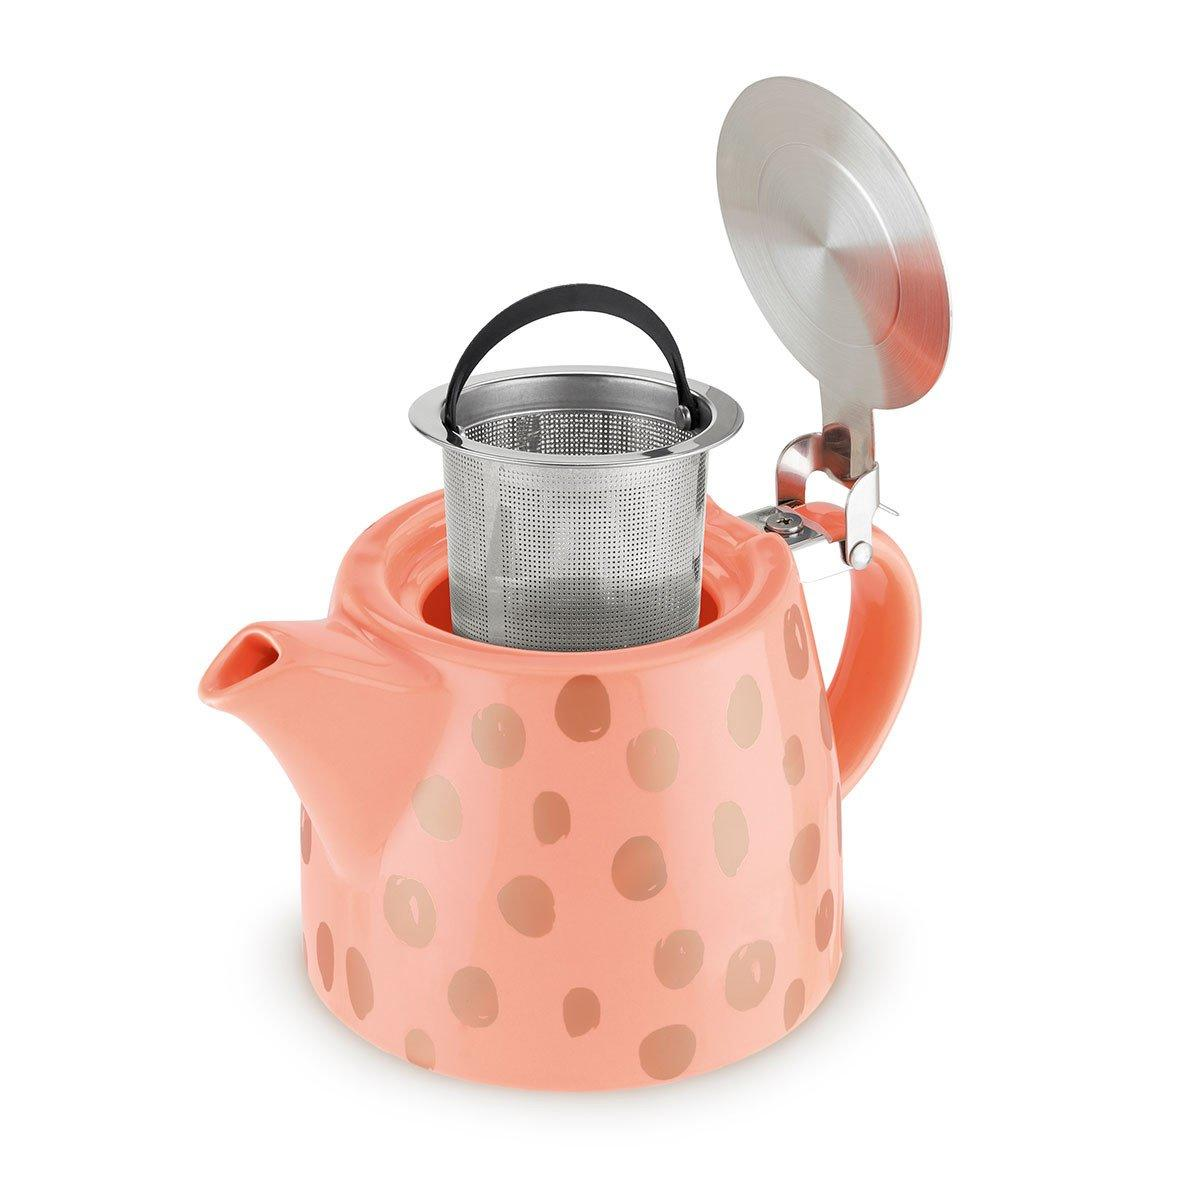 Harper Peach and Copper Ceramic Teapot and Infuser - Only £26.99